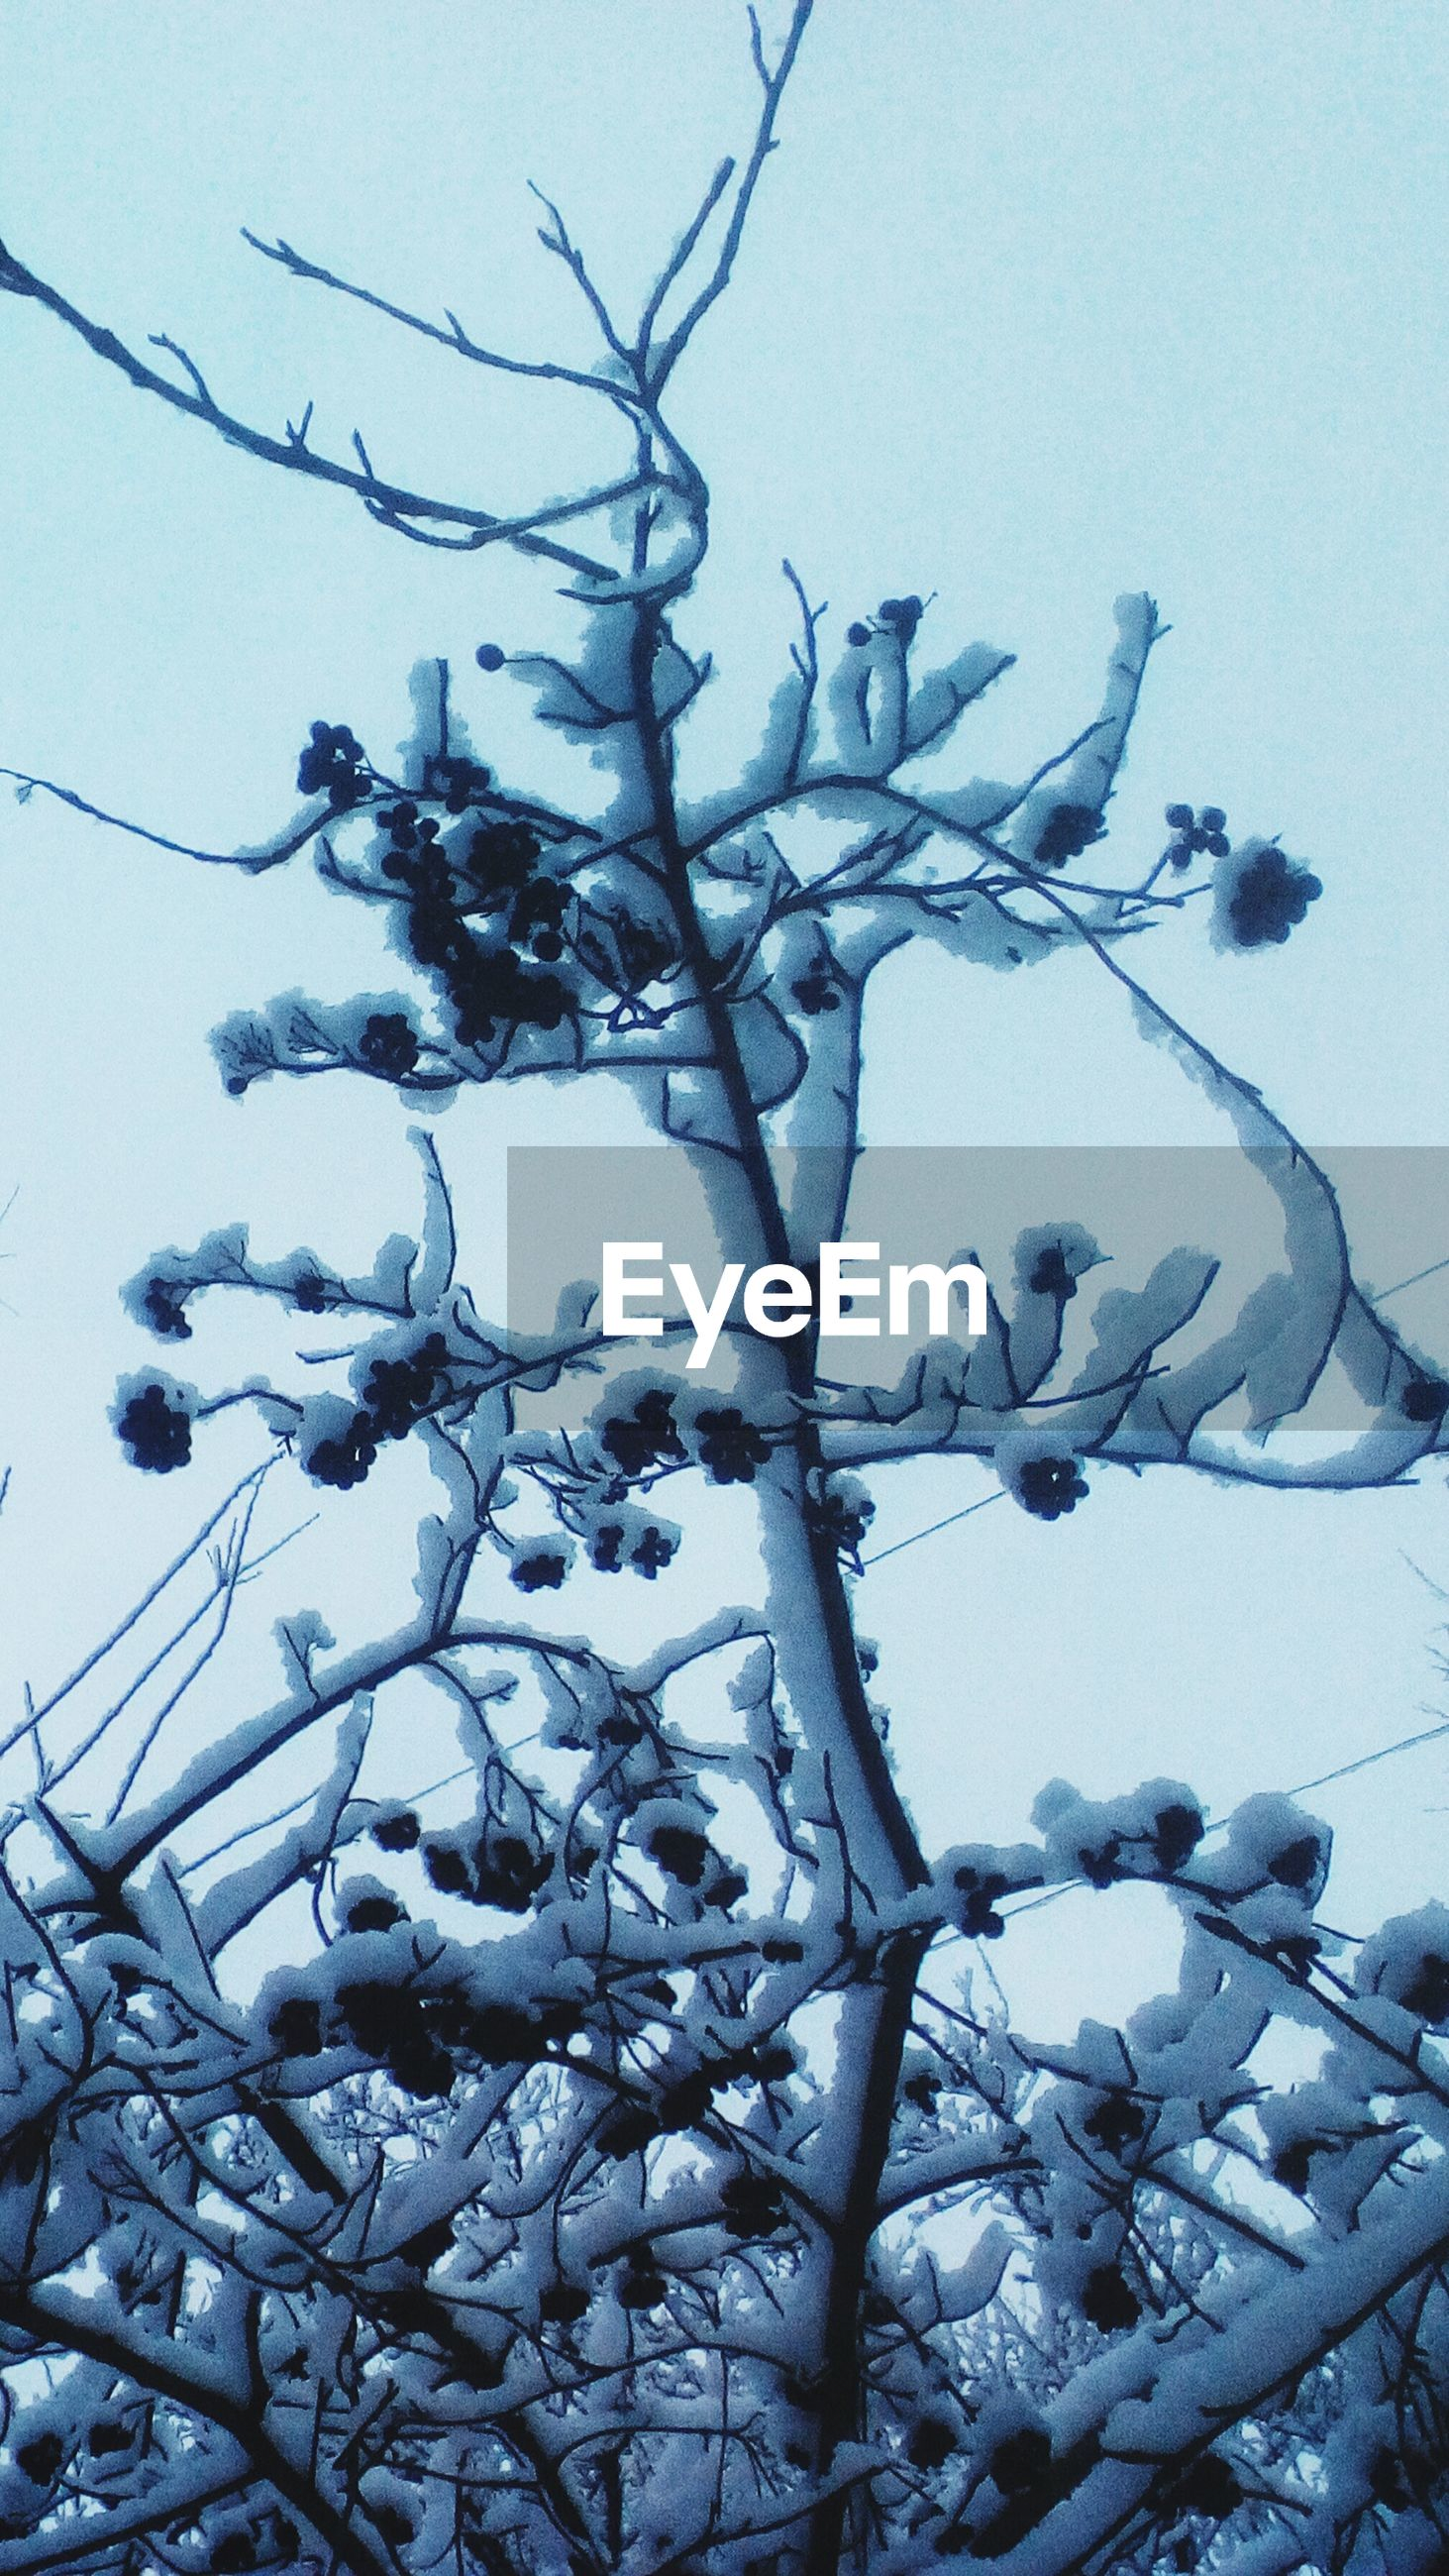 winter, cold temperature, nature, tree, branch, snow, no people, weather, beauty in nature, low angle view, day, sky, tranquility, outdoors, bare tree, scenics, close-up, backgrounds